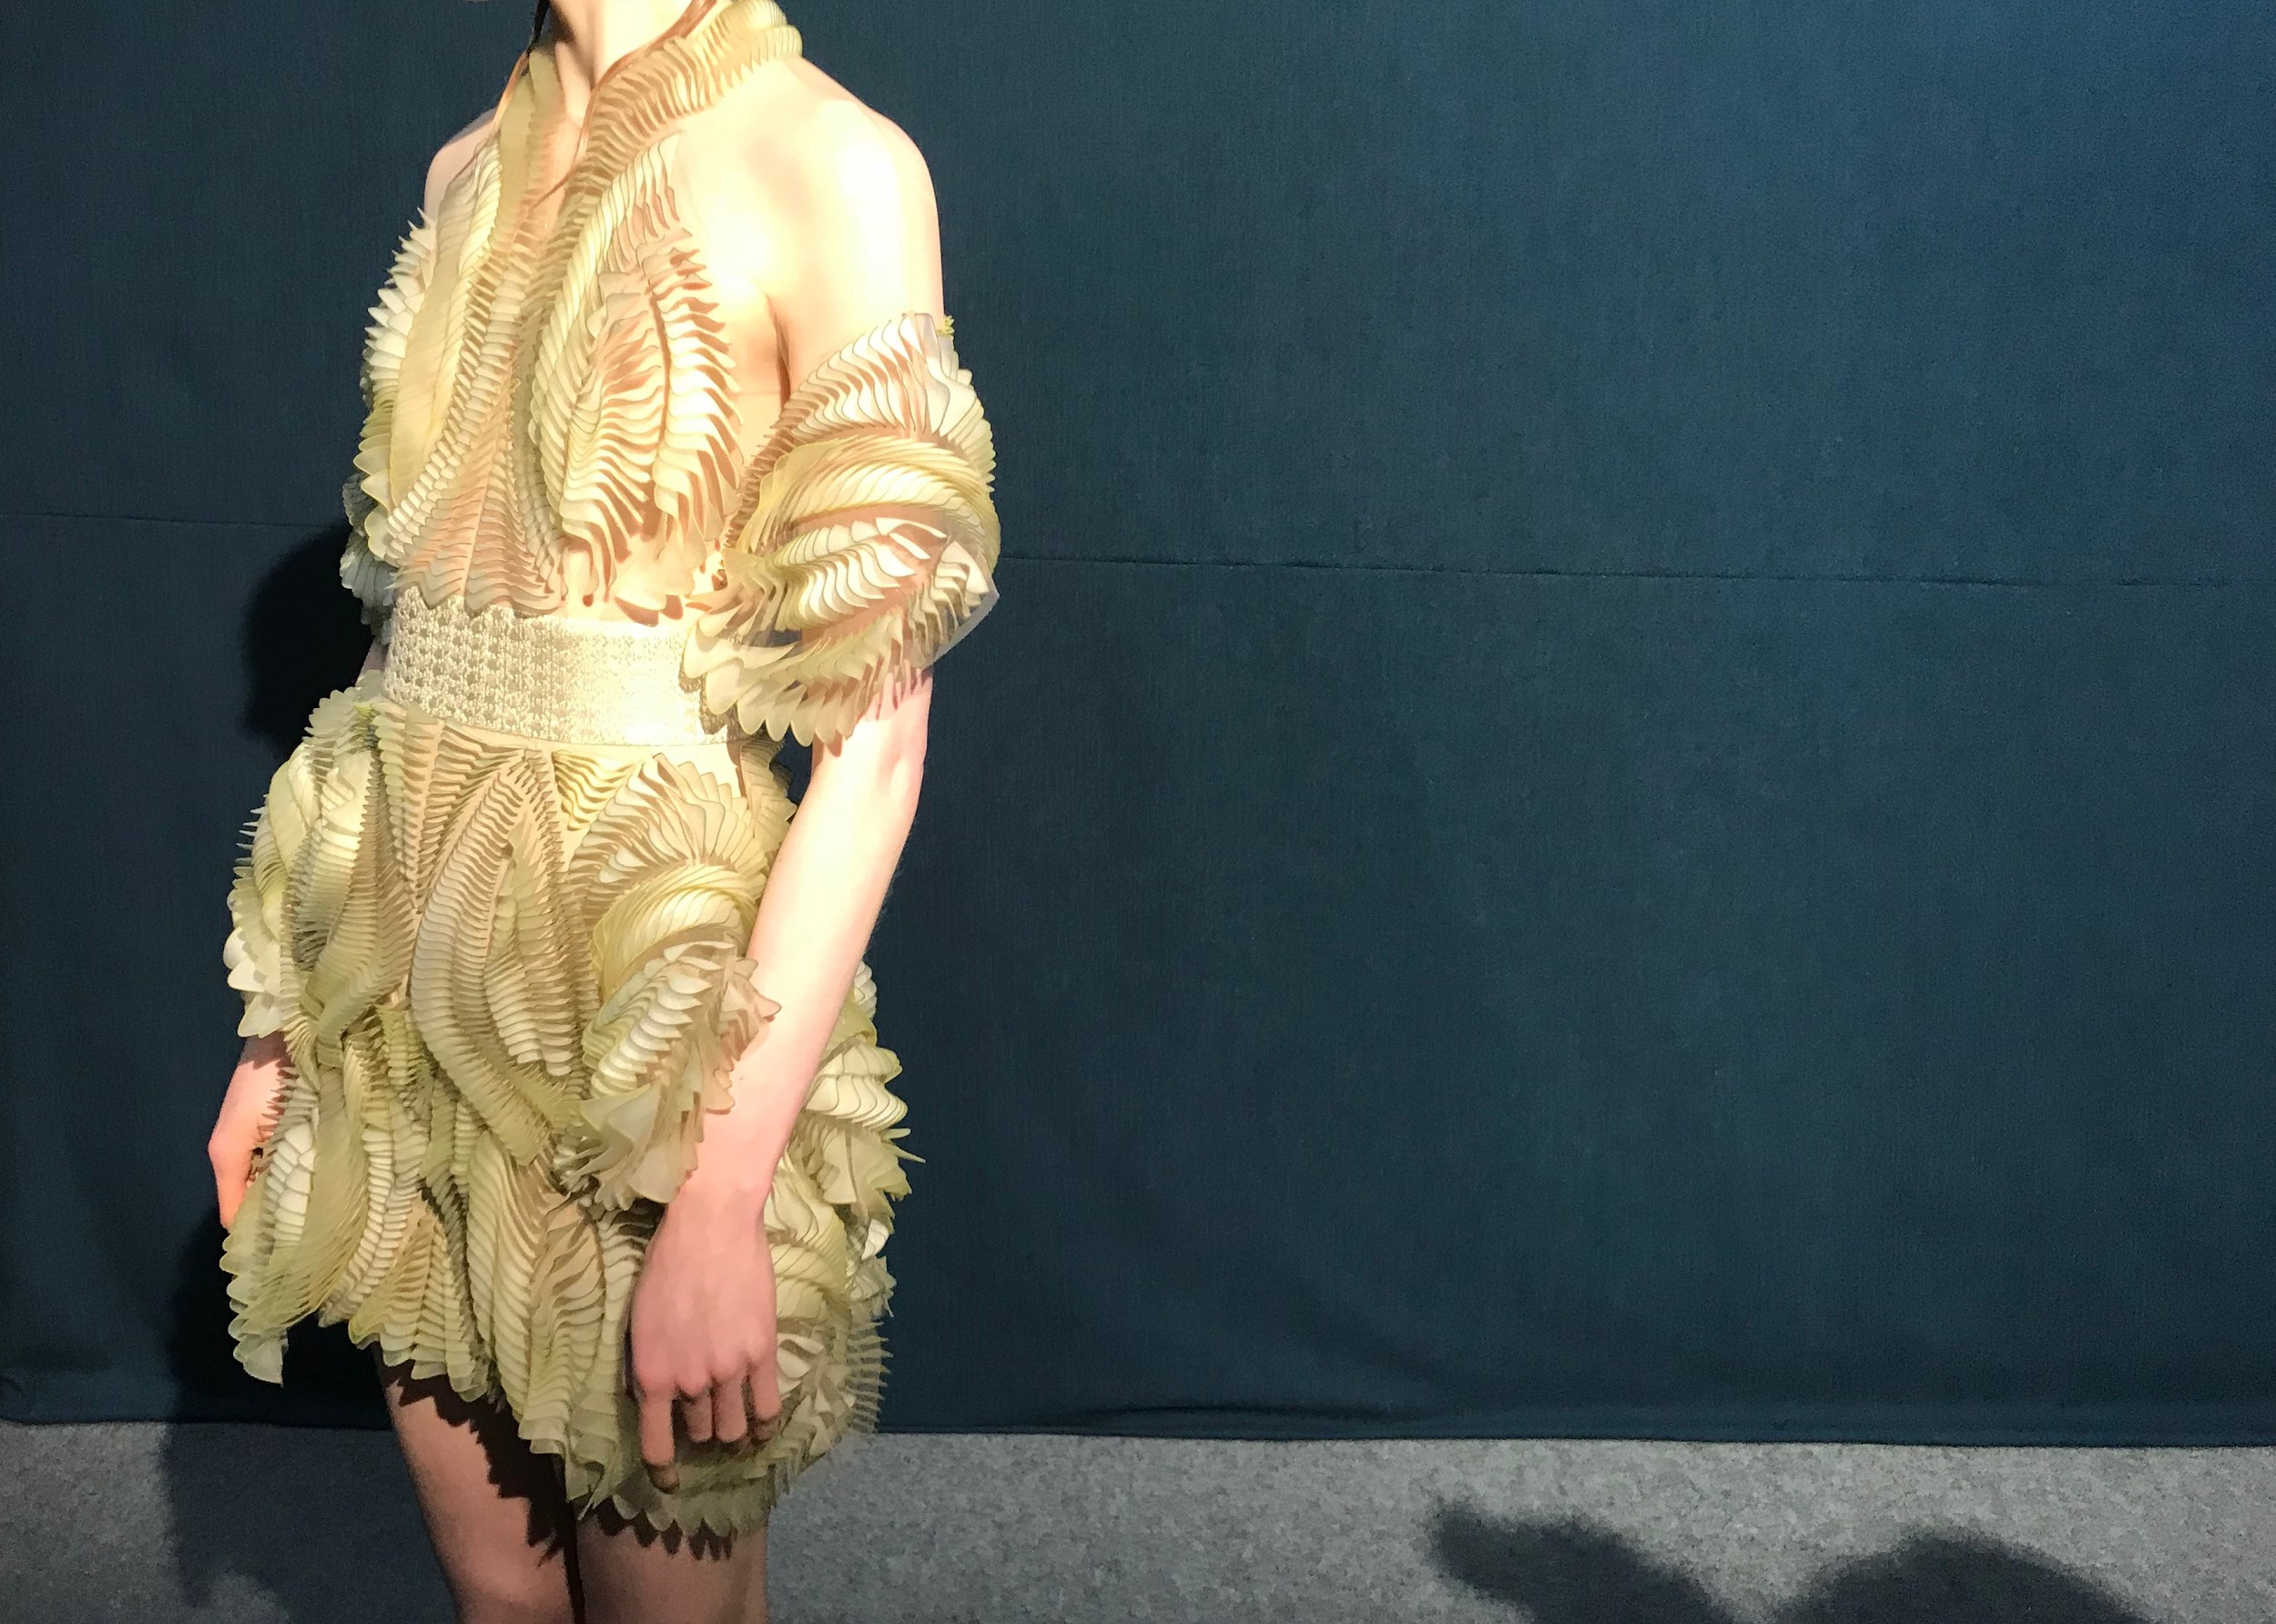 3D printed dress by Iris Van Herpen at Paris Fashion Week